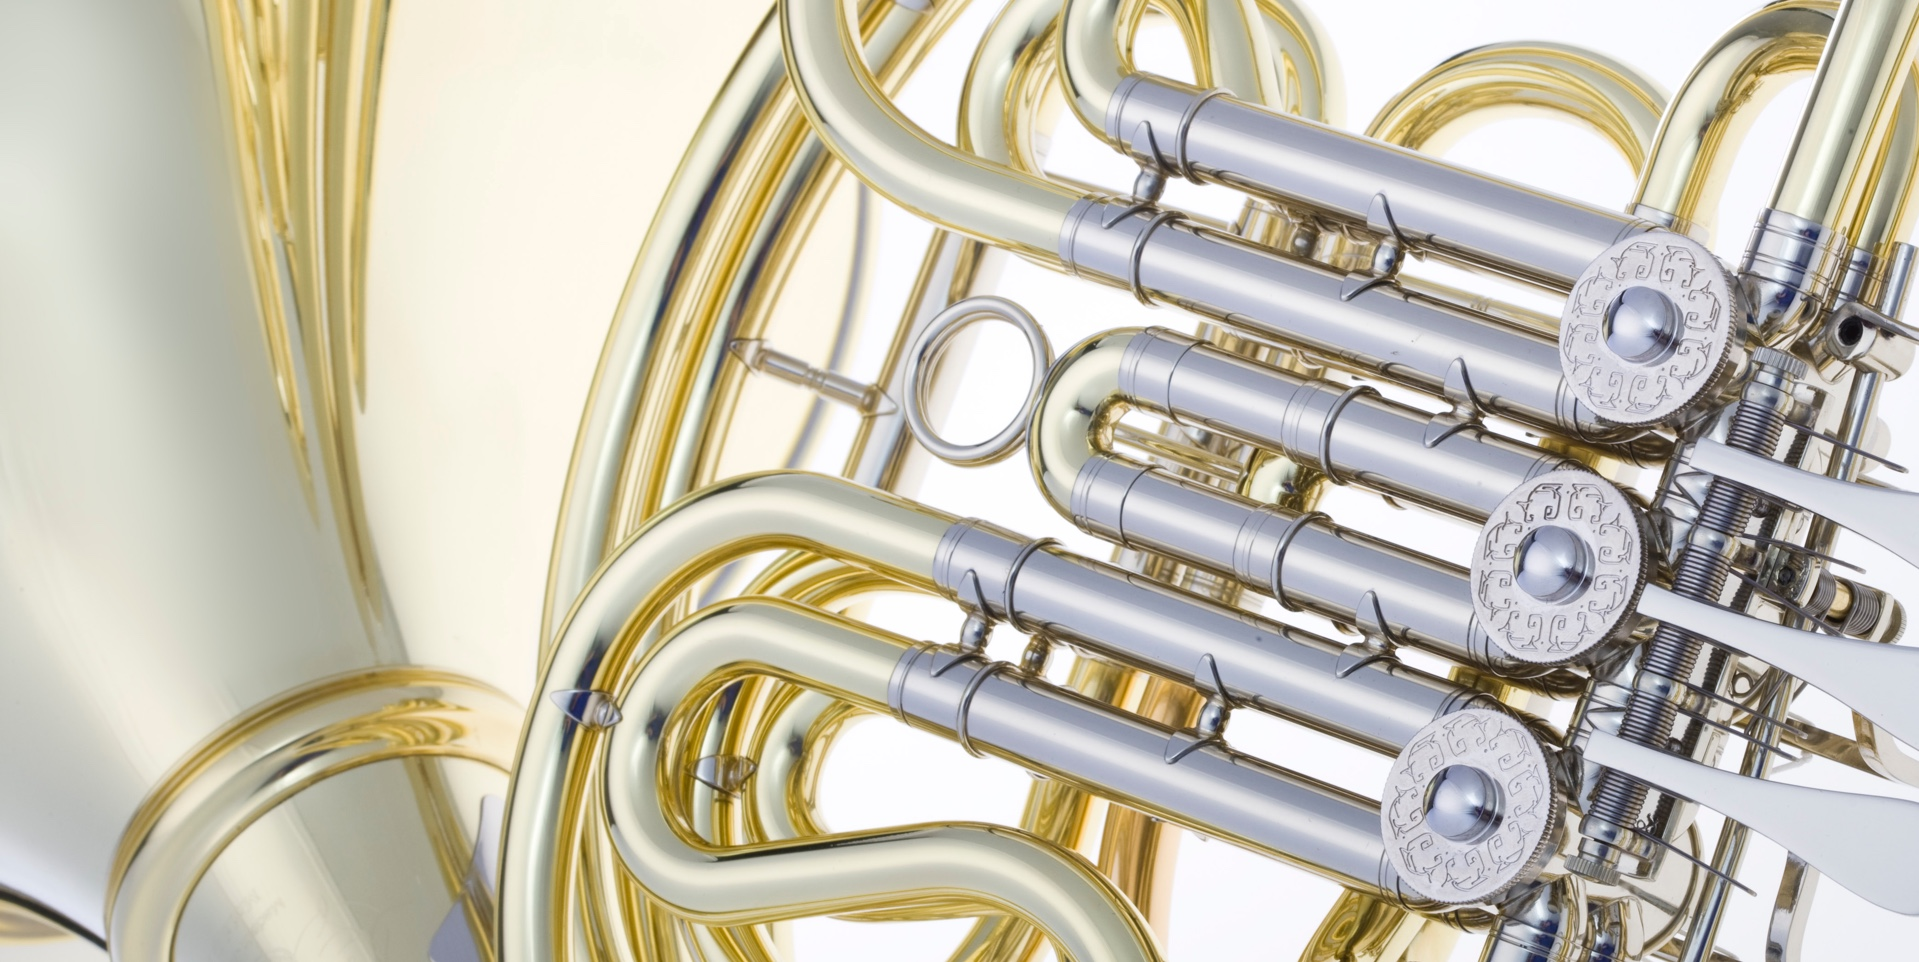 french horn wiki